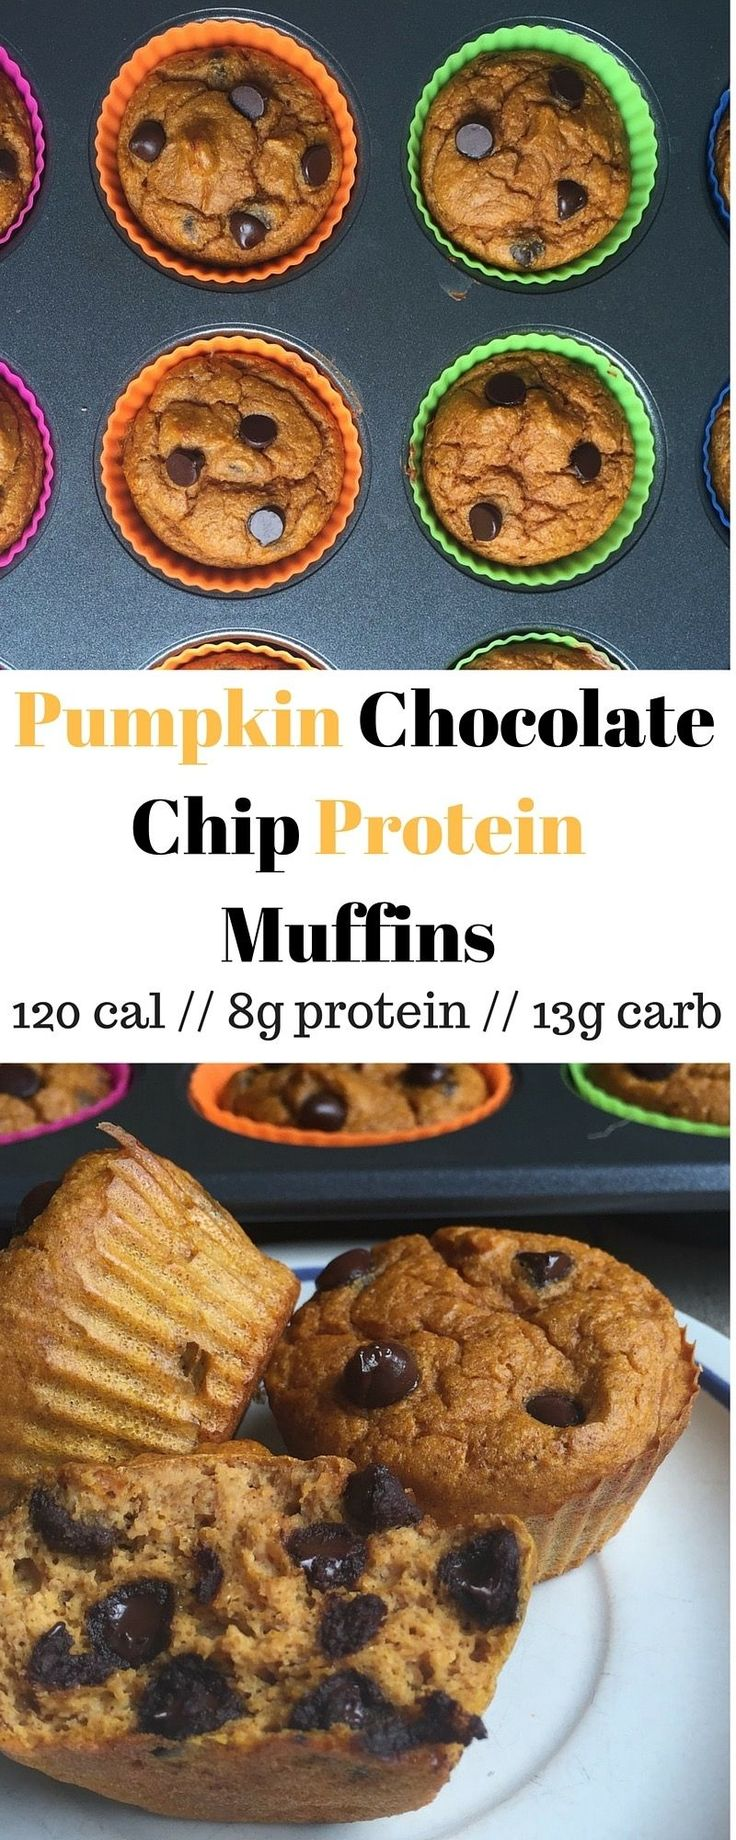 Pumpkin Chocolate Chip Protein Muffins - fall and healthy eating combined, these Pumpkin Chocolate Chip Protein Muffins are packed with protein, are low carb, and less than 120 calories - Eat the Gains